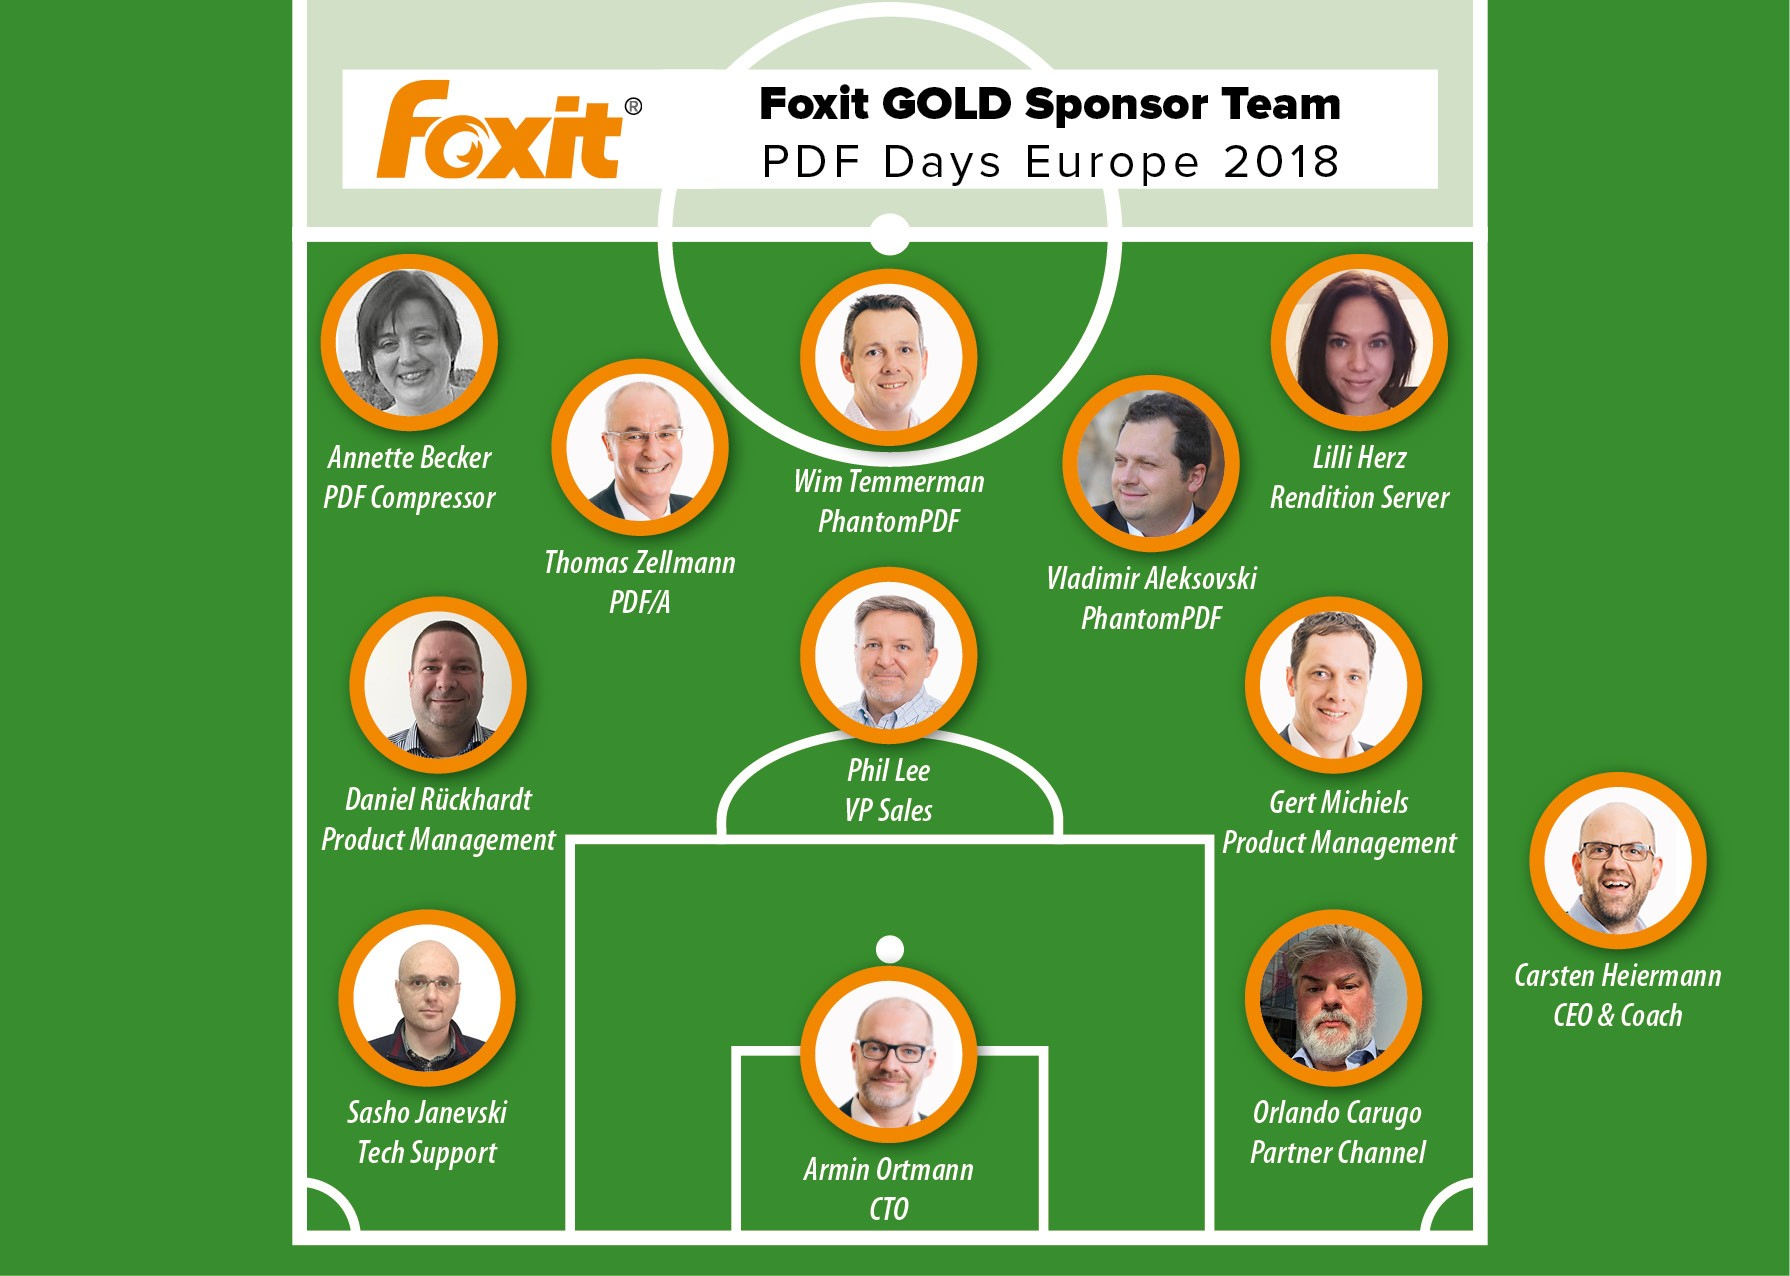 foxit-pdfdays-team11